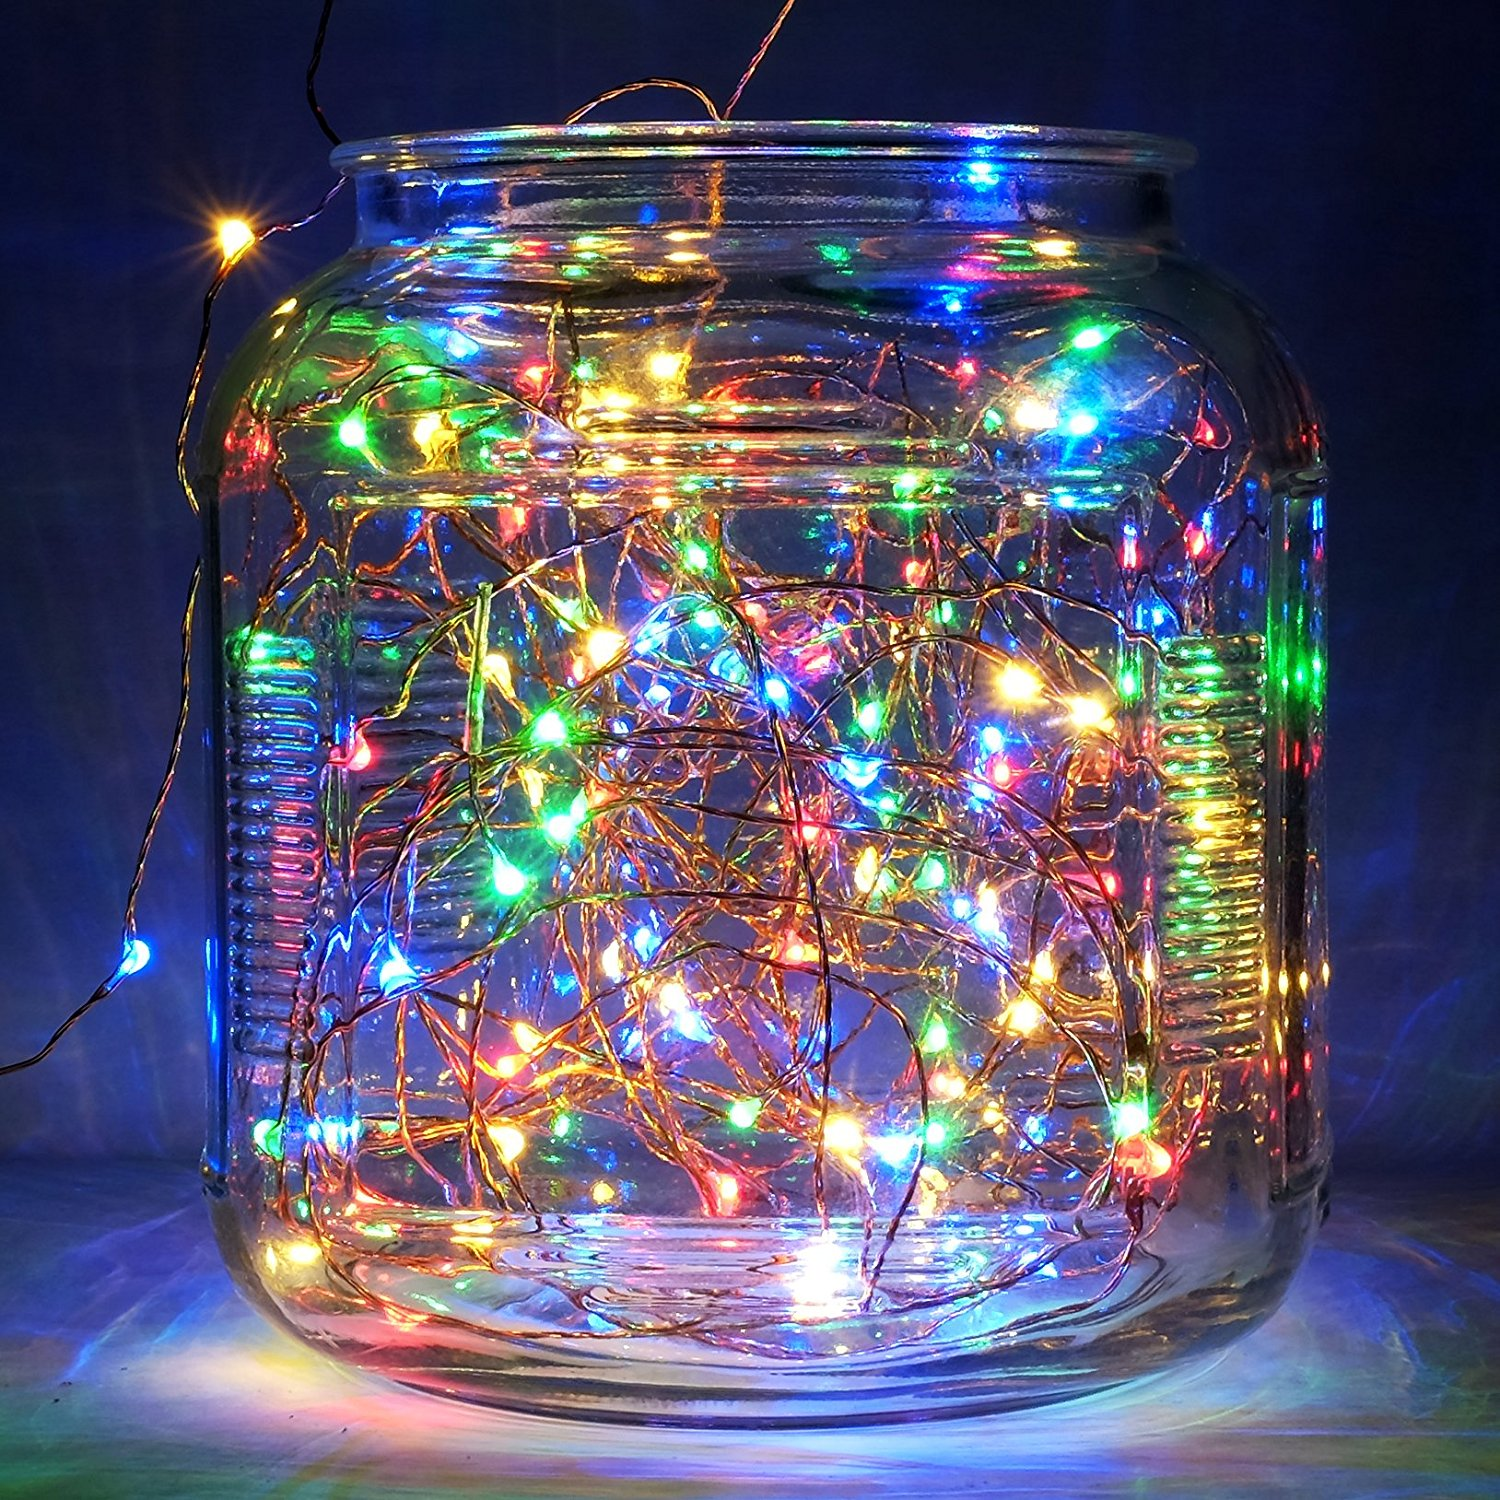 15 christmas tree lights you can buy on amazon holidays 21349 | waterproof 2bstring 2blight 2bfor 2bparty 252c 2bholiday 252c 2bchristmas 252c 2bgarden 252c 2bweeding 2bdecoration